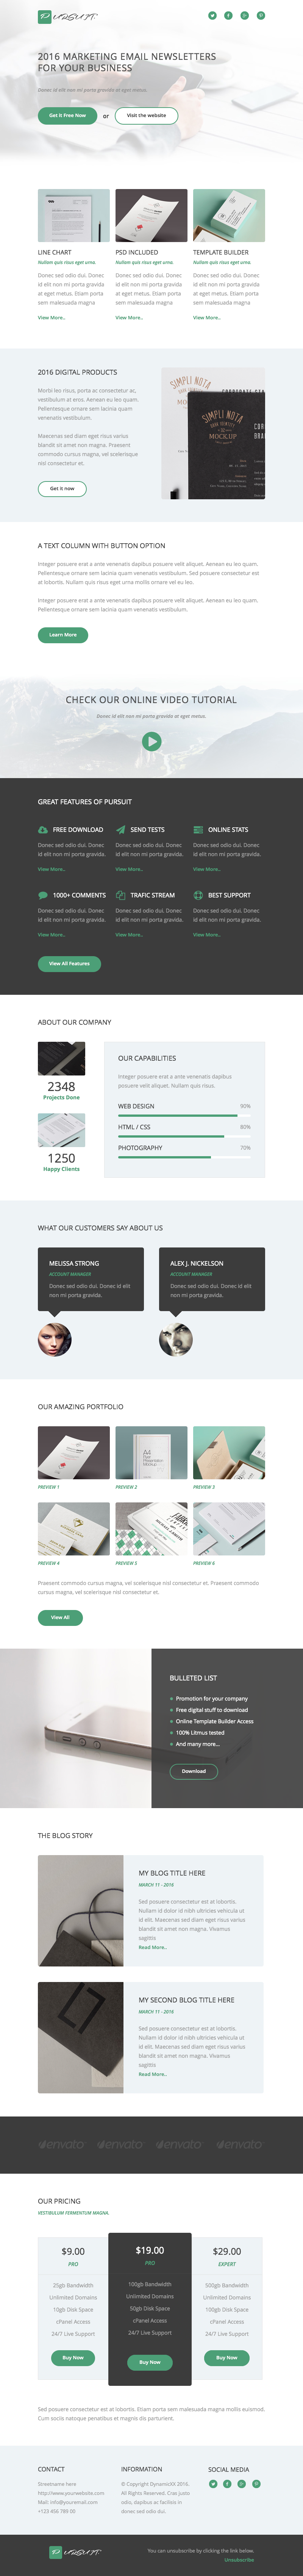 Market Responsive Newsletter With Template Builder Image collections ...